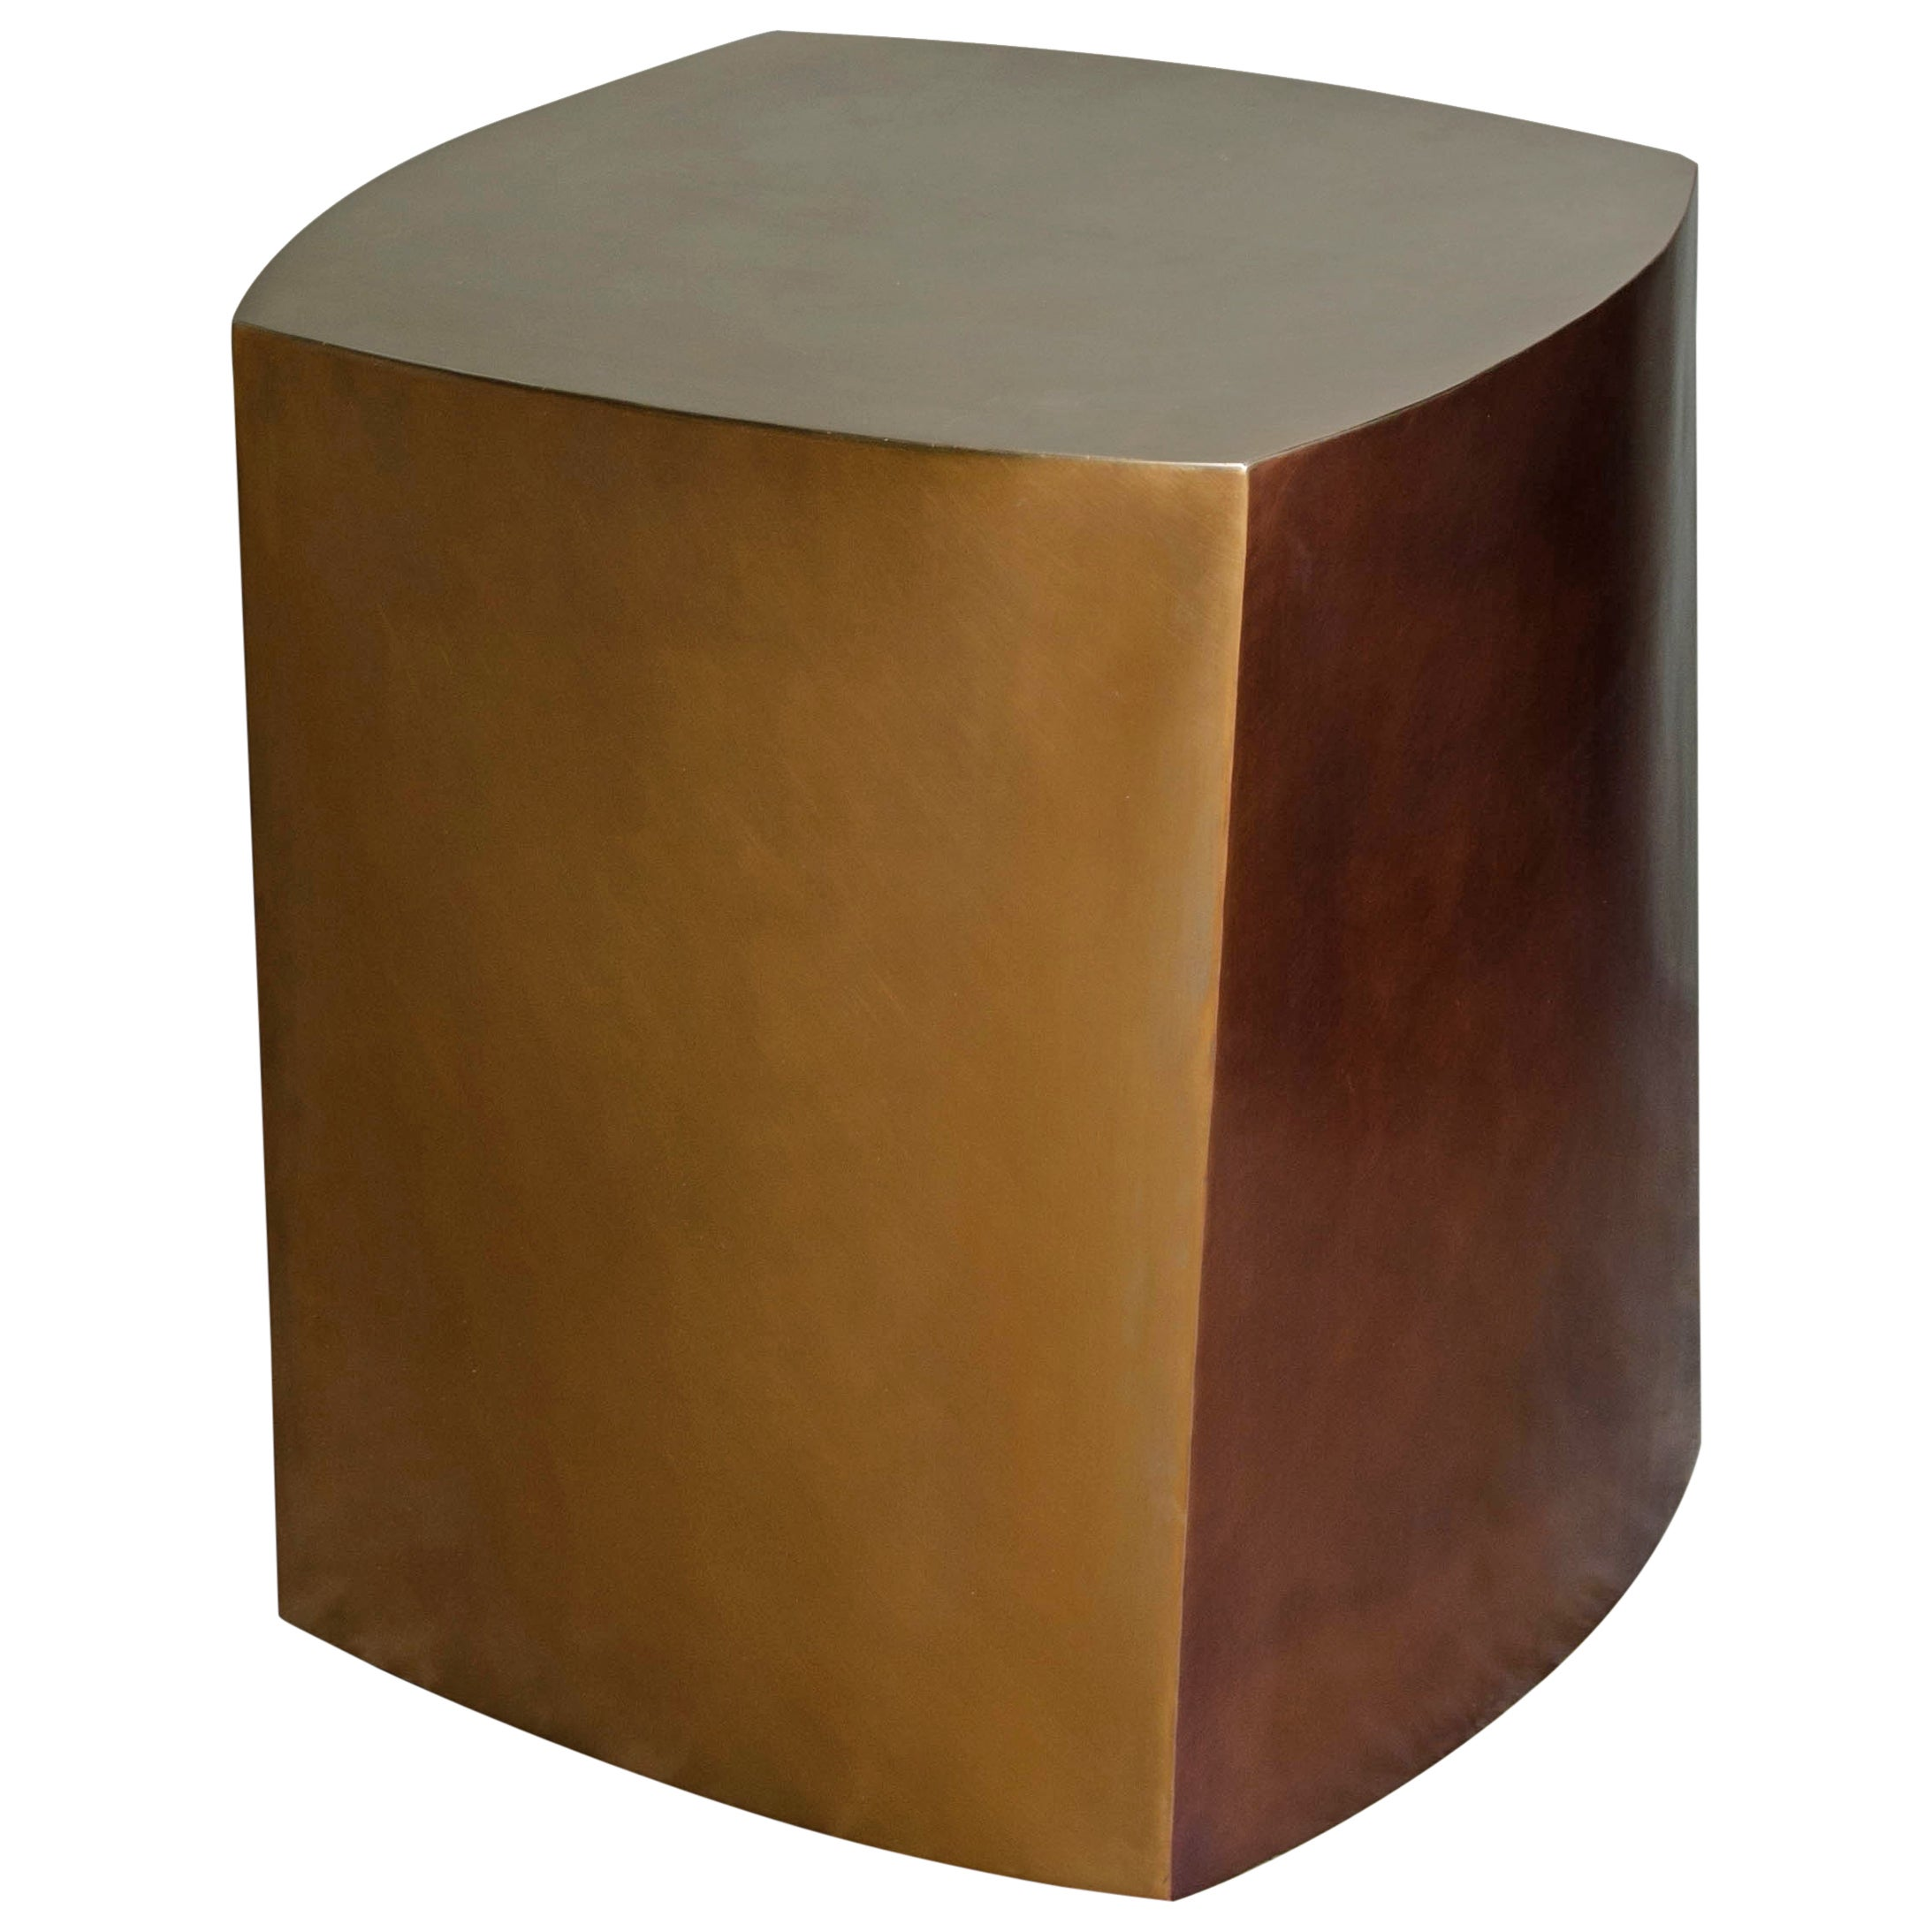 Three-Tone Fang Bei Drumstool by Robert Kuo, Limited Edition, Customizable